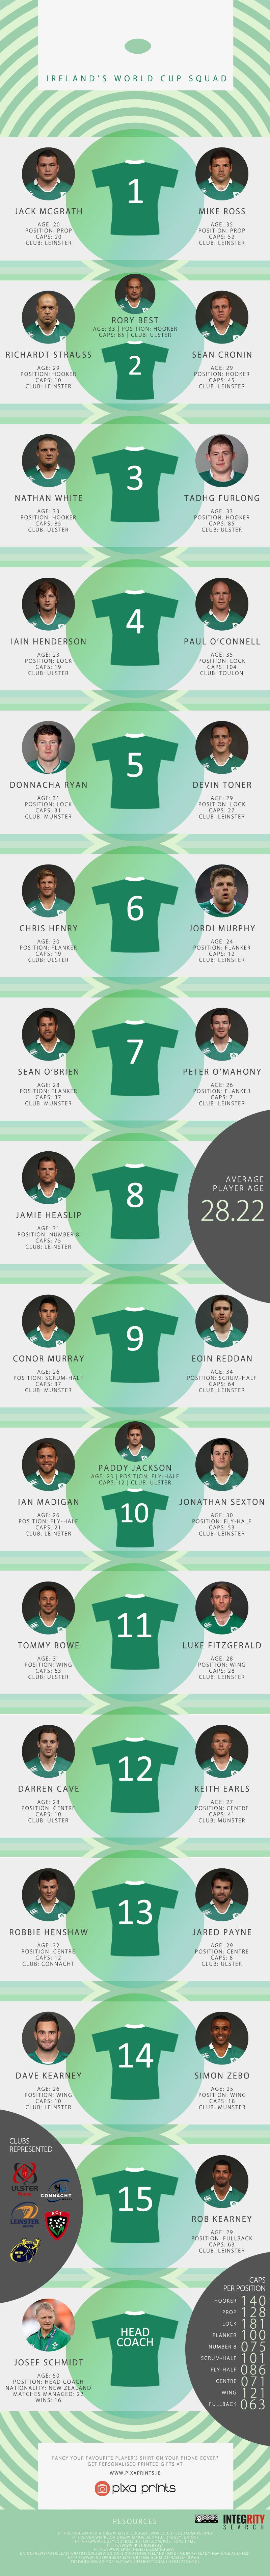 Ireland's Rugby World Cup Squad Infographic